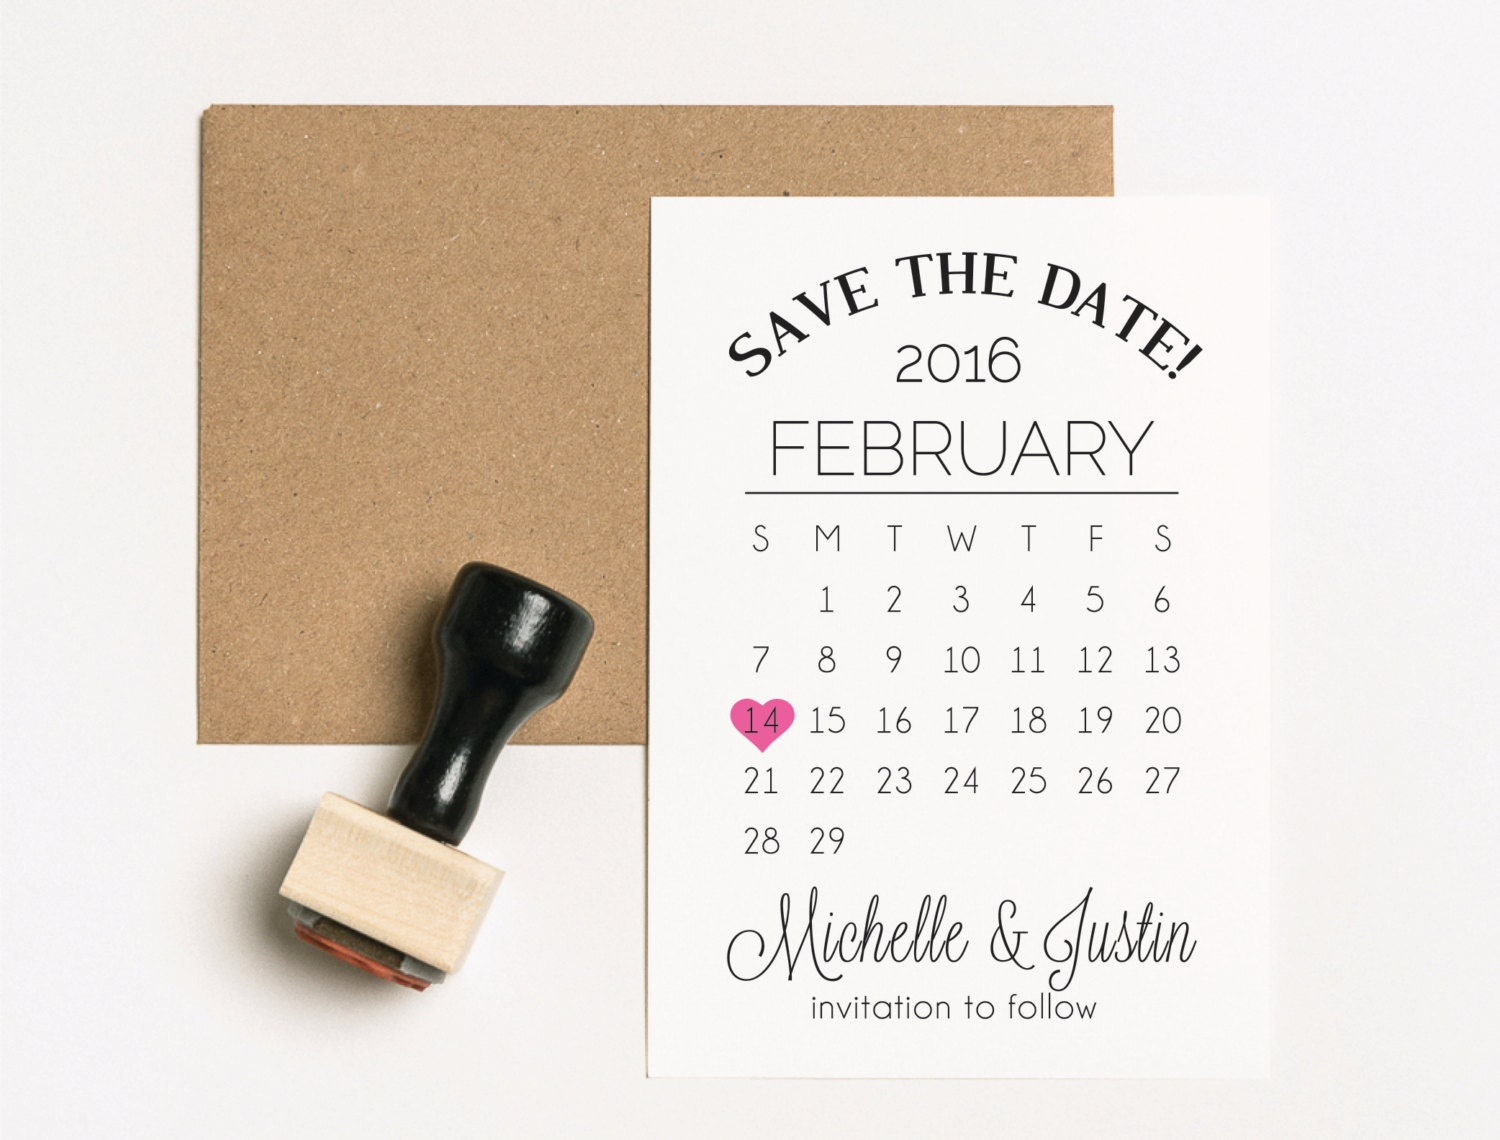 save the date calendar - Boat.jeremyeaton.co